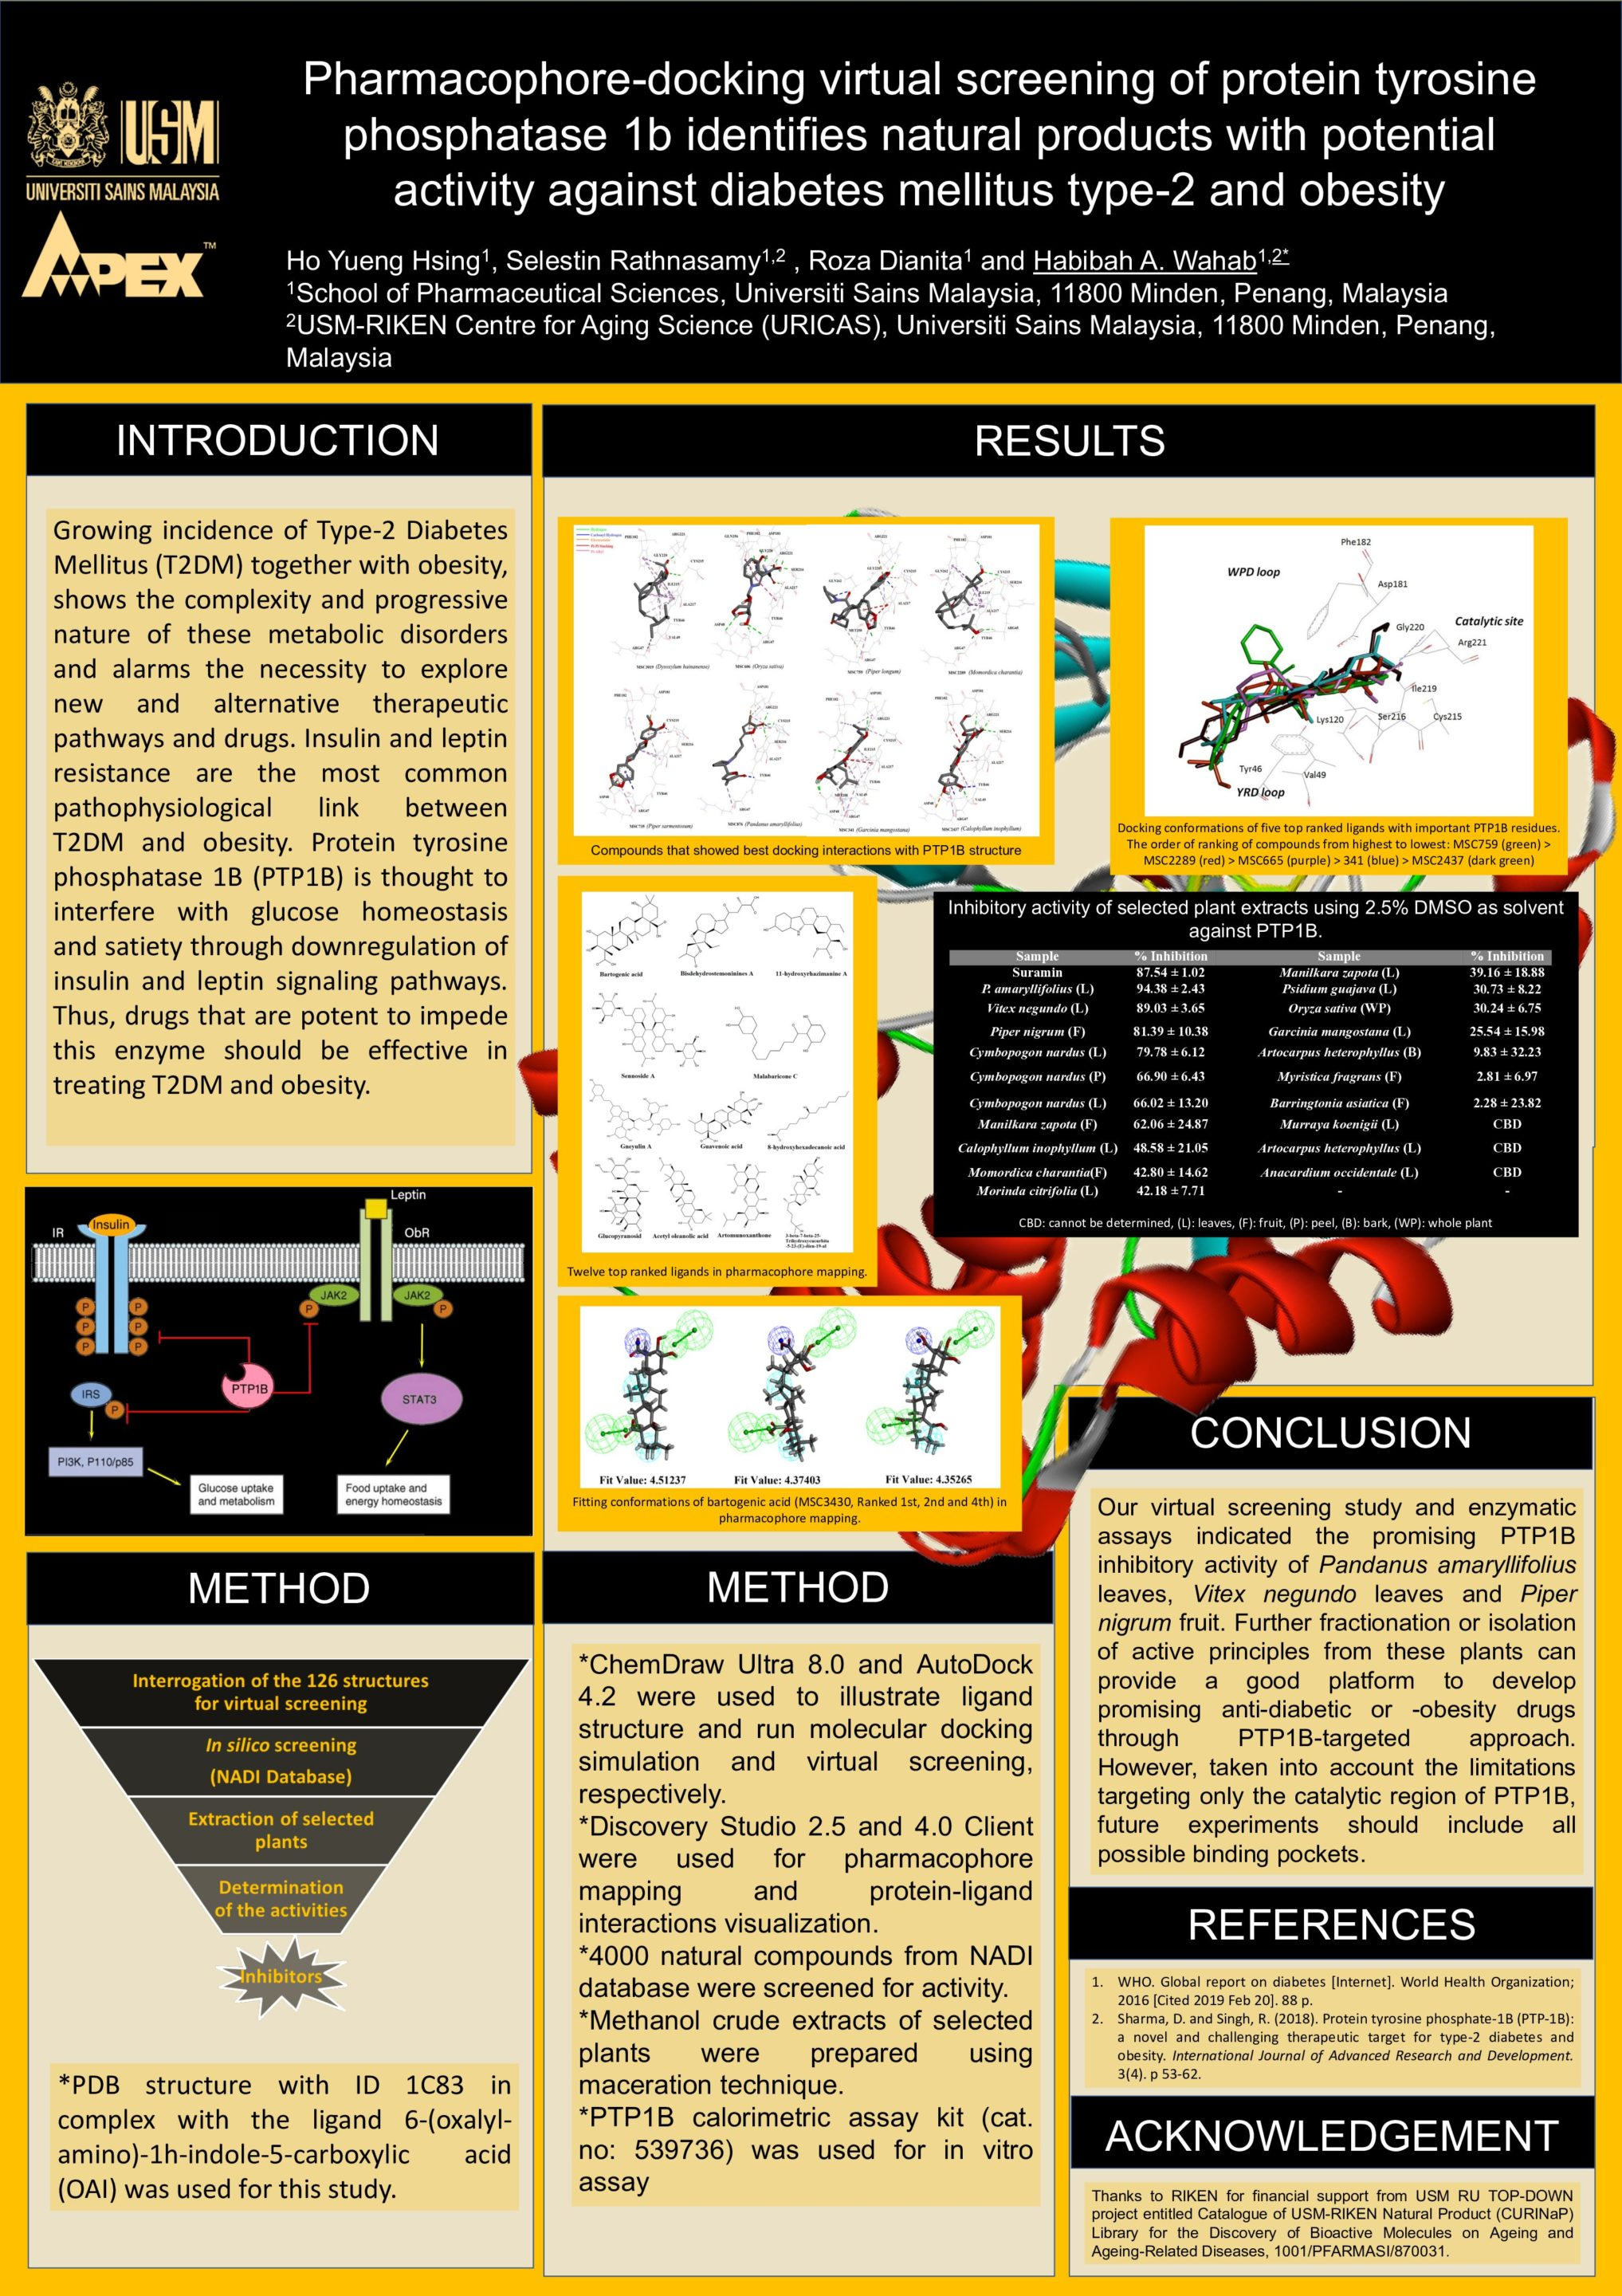 Example of Conference Poster from Morressier